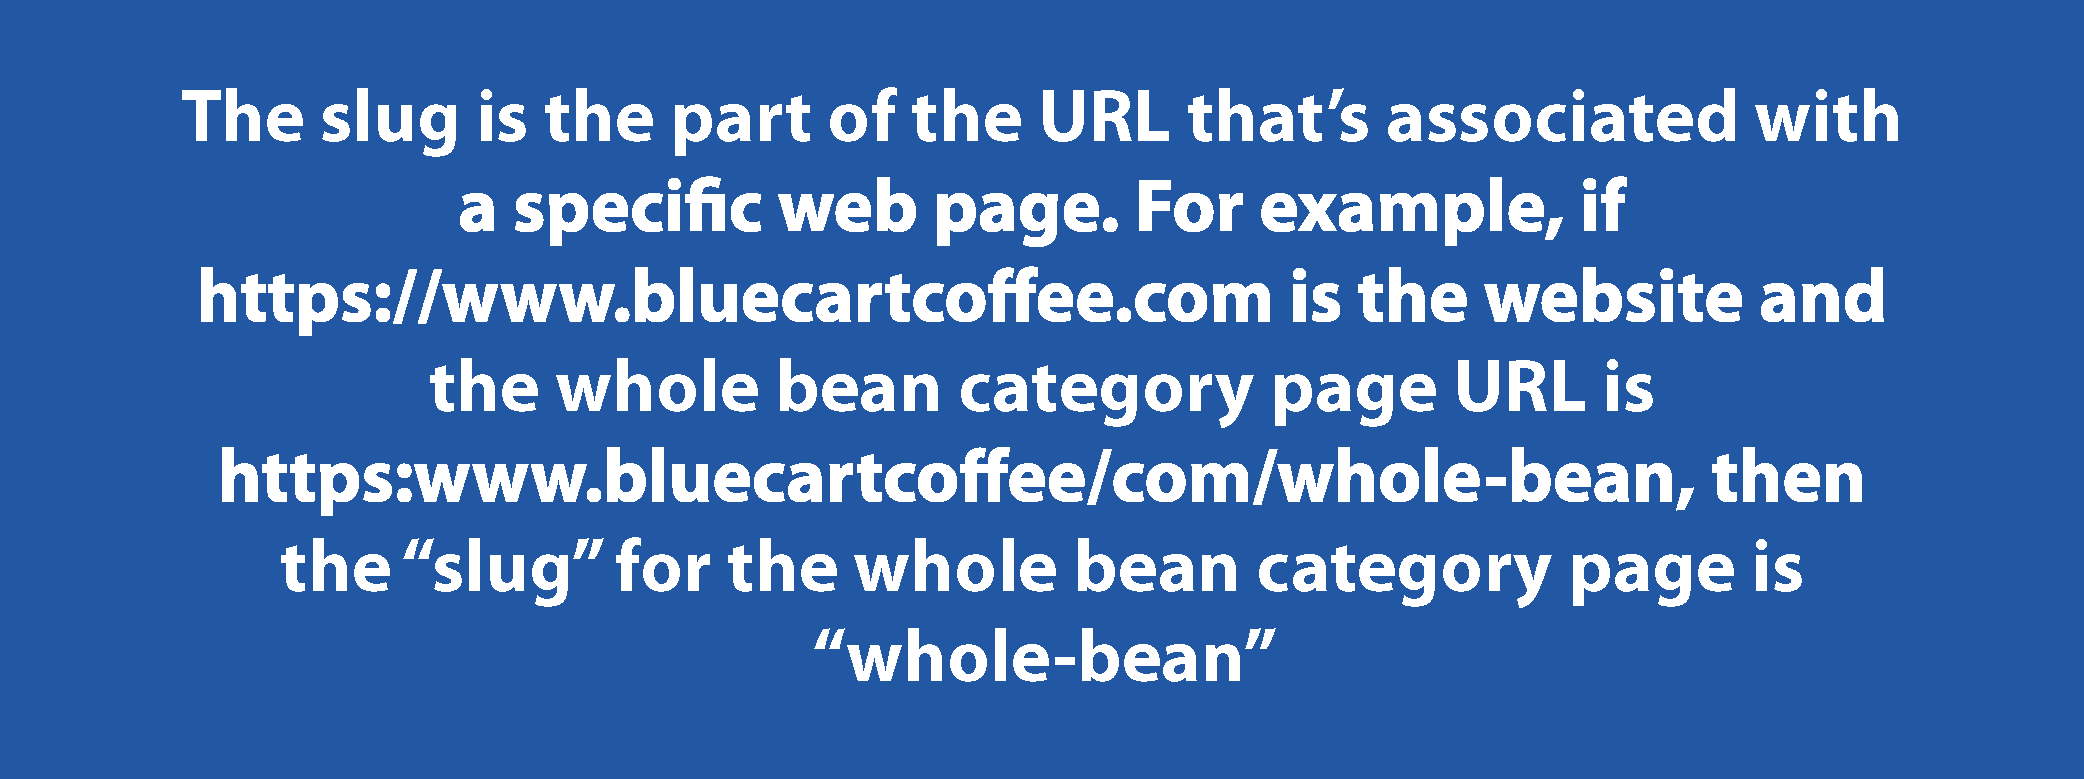 SEO URL slug definition